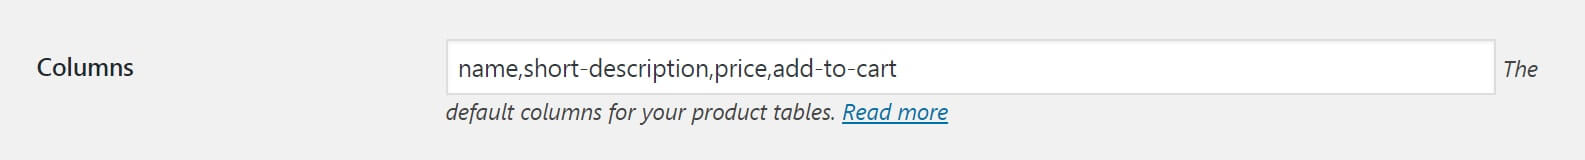 The WooCommerce Product Table settings for columns.